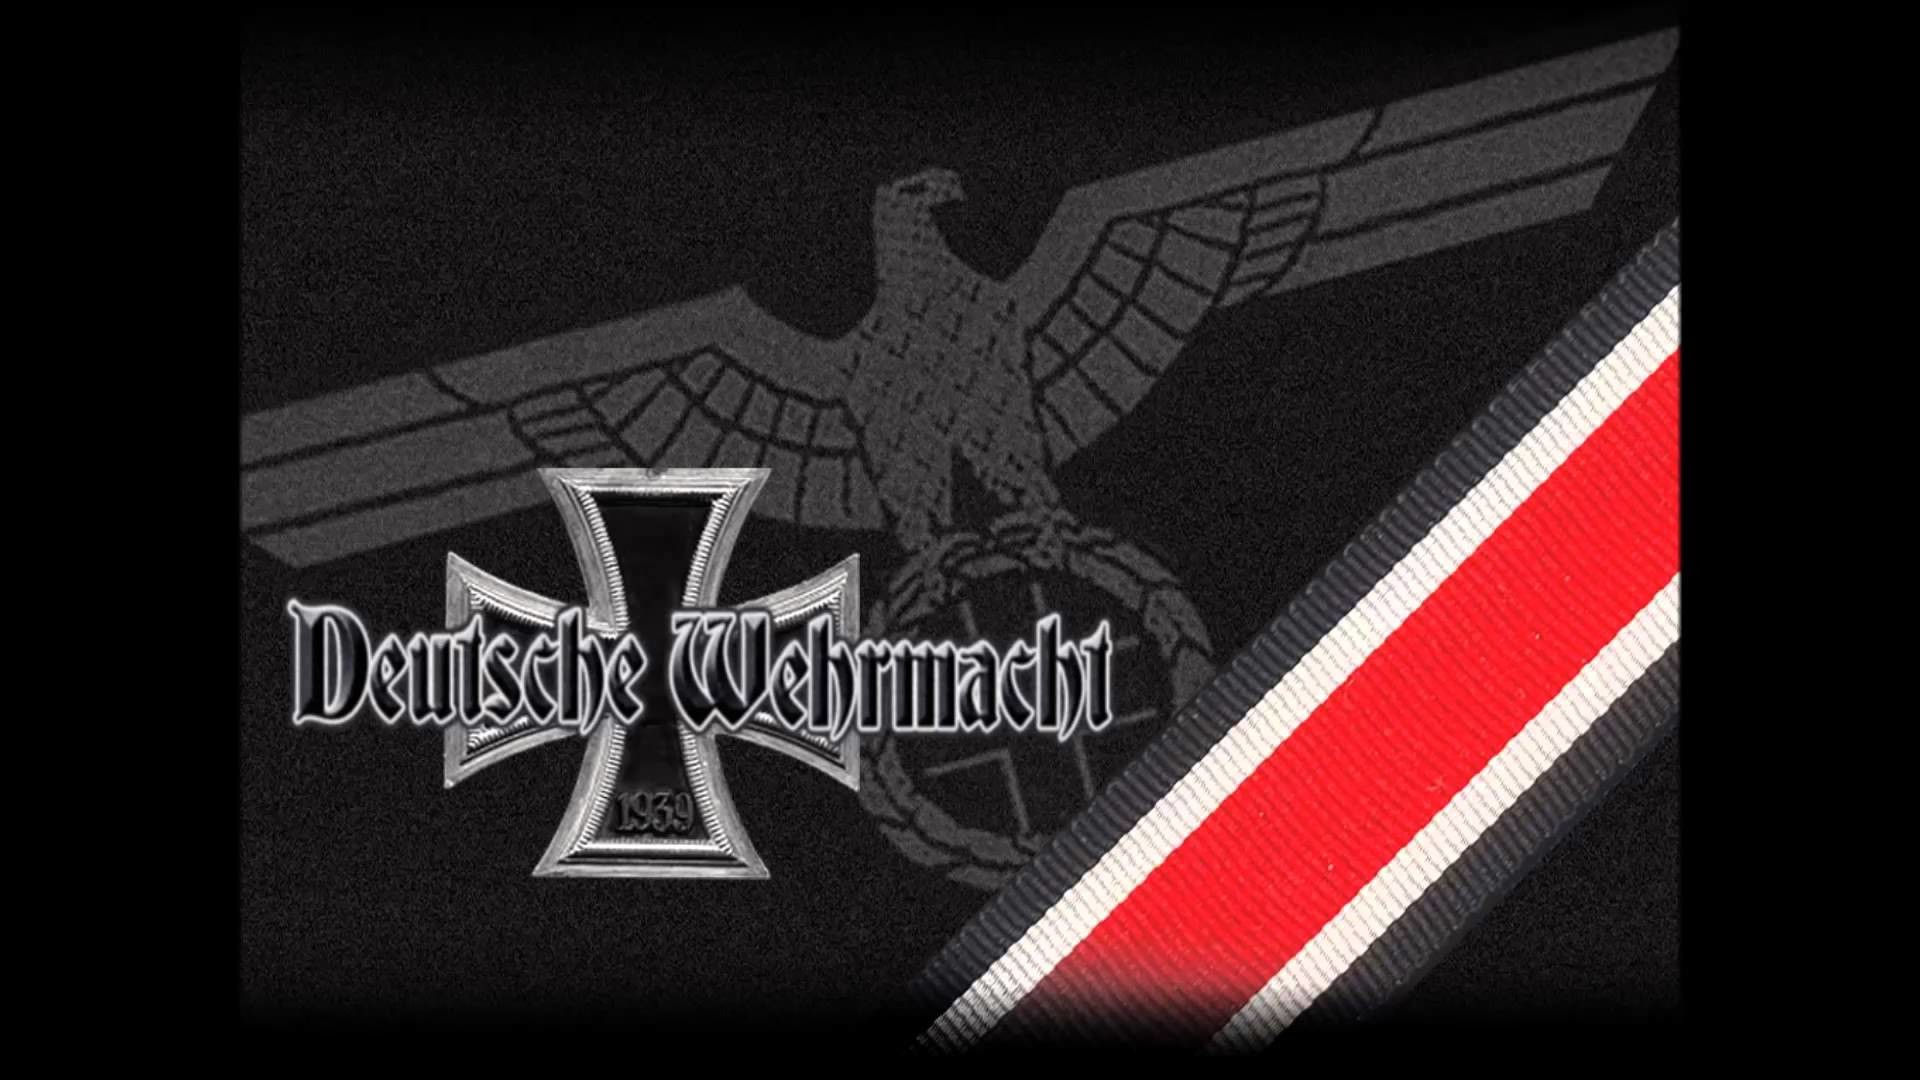 Wehrmacht Wallpapers 73 images 1920x1080